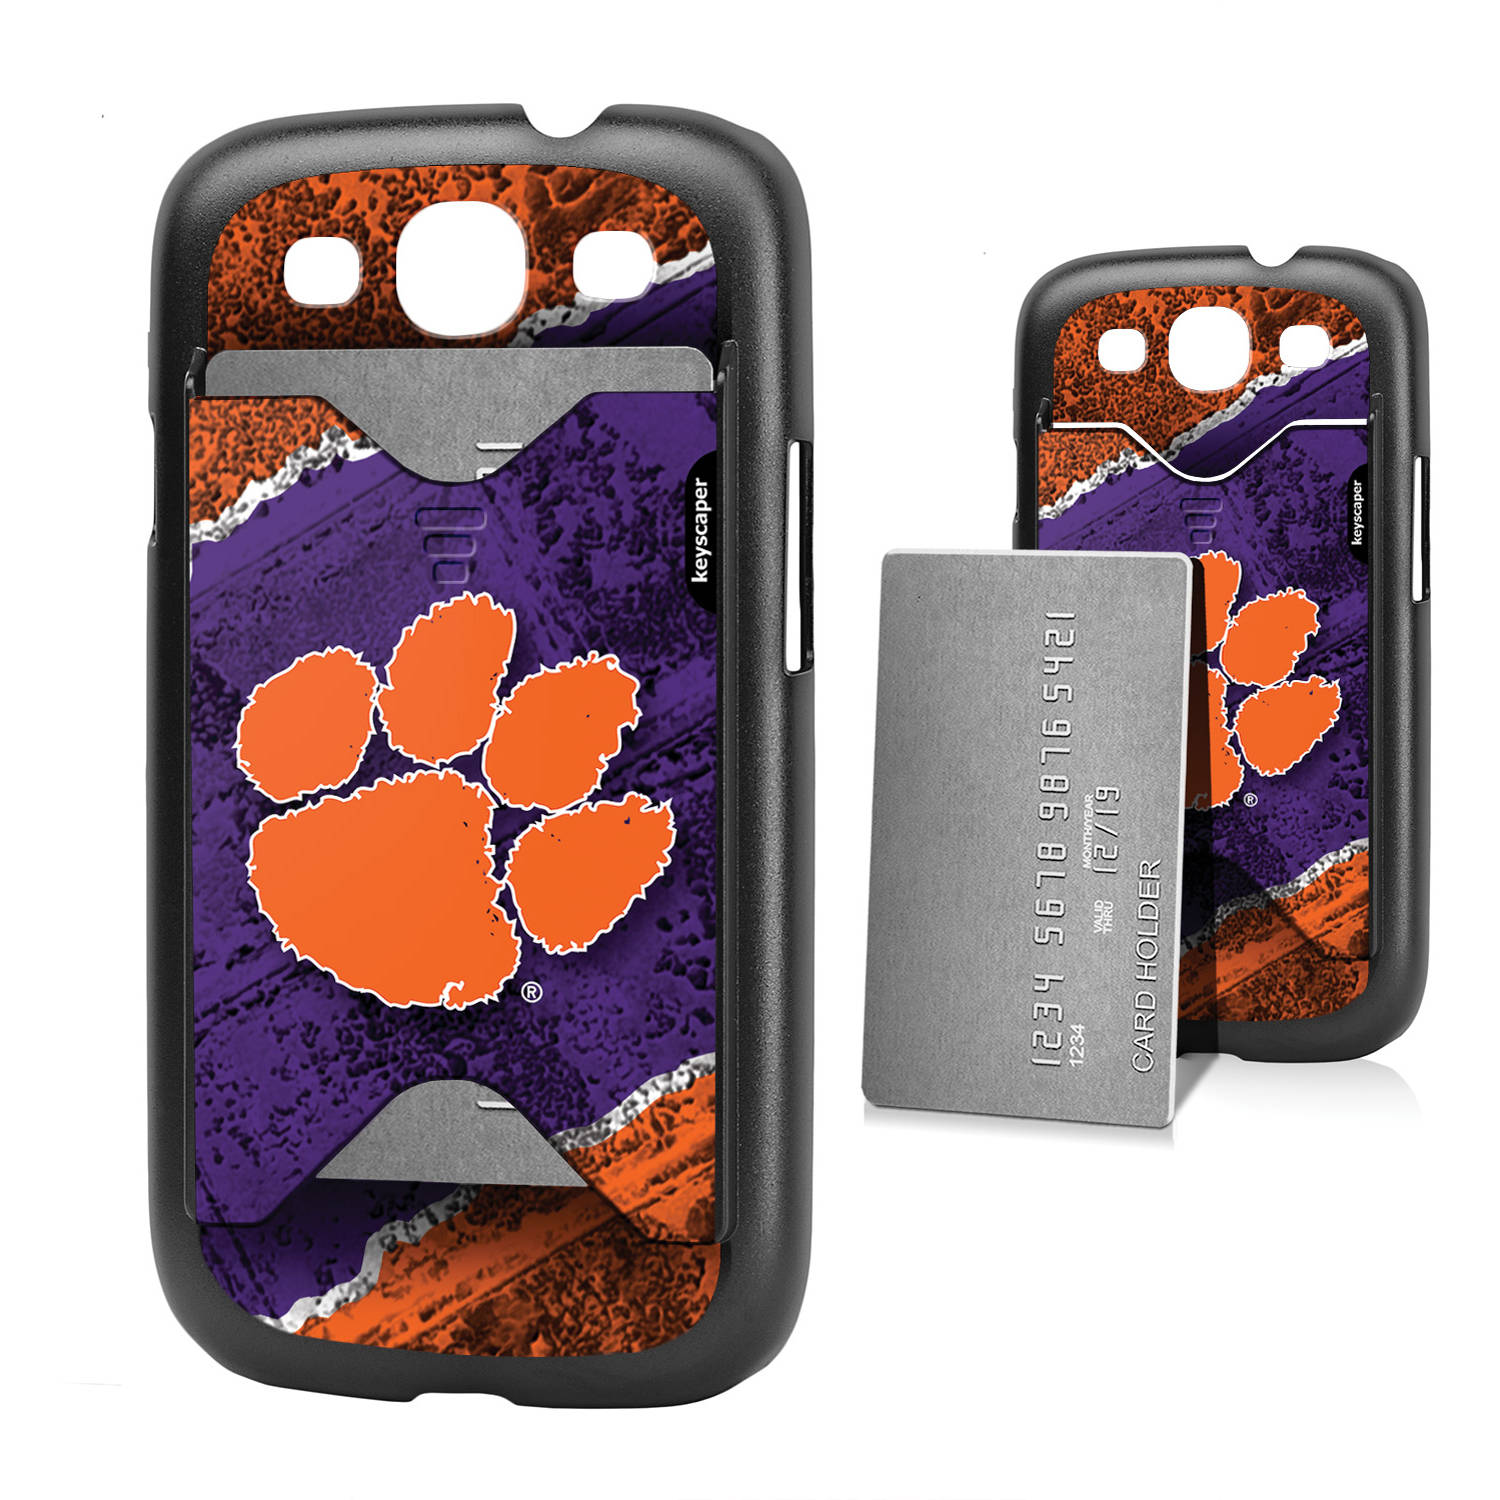 Clemson Tigers Galaxy S3 Credit Card Case